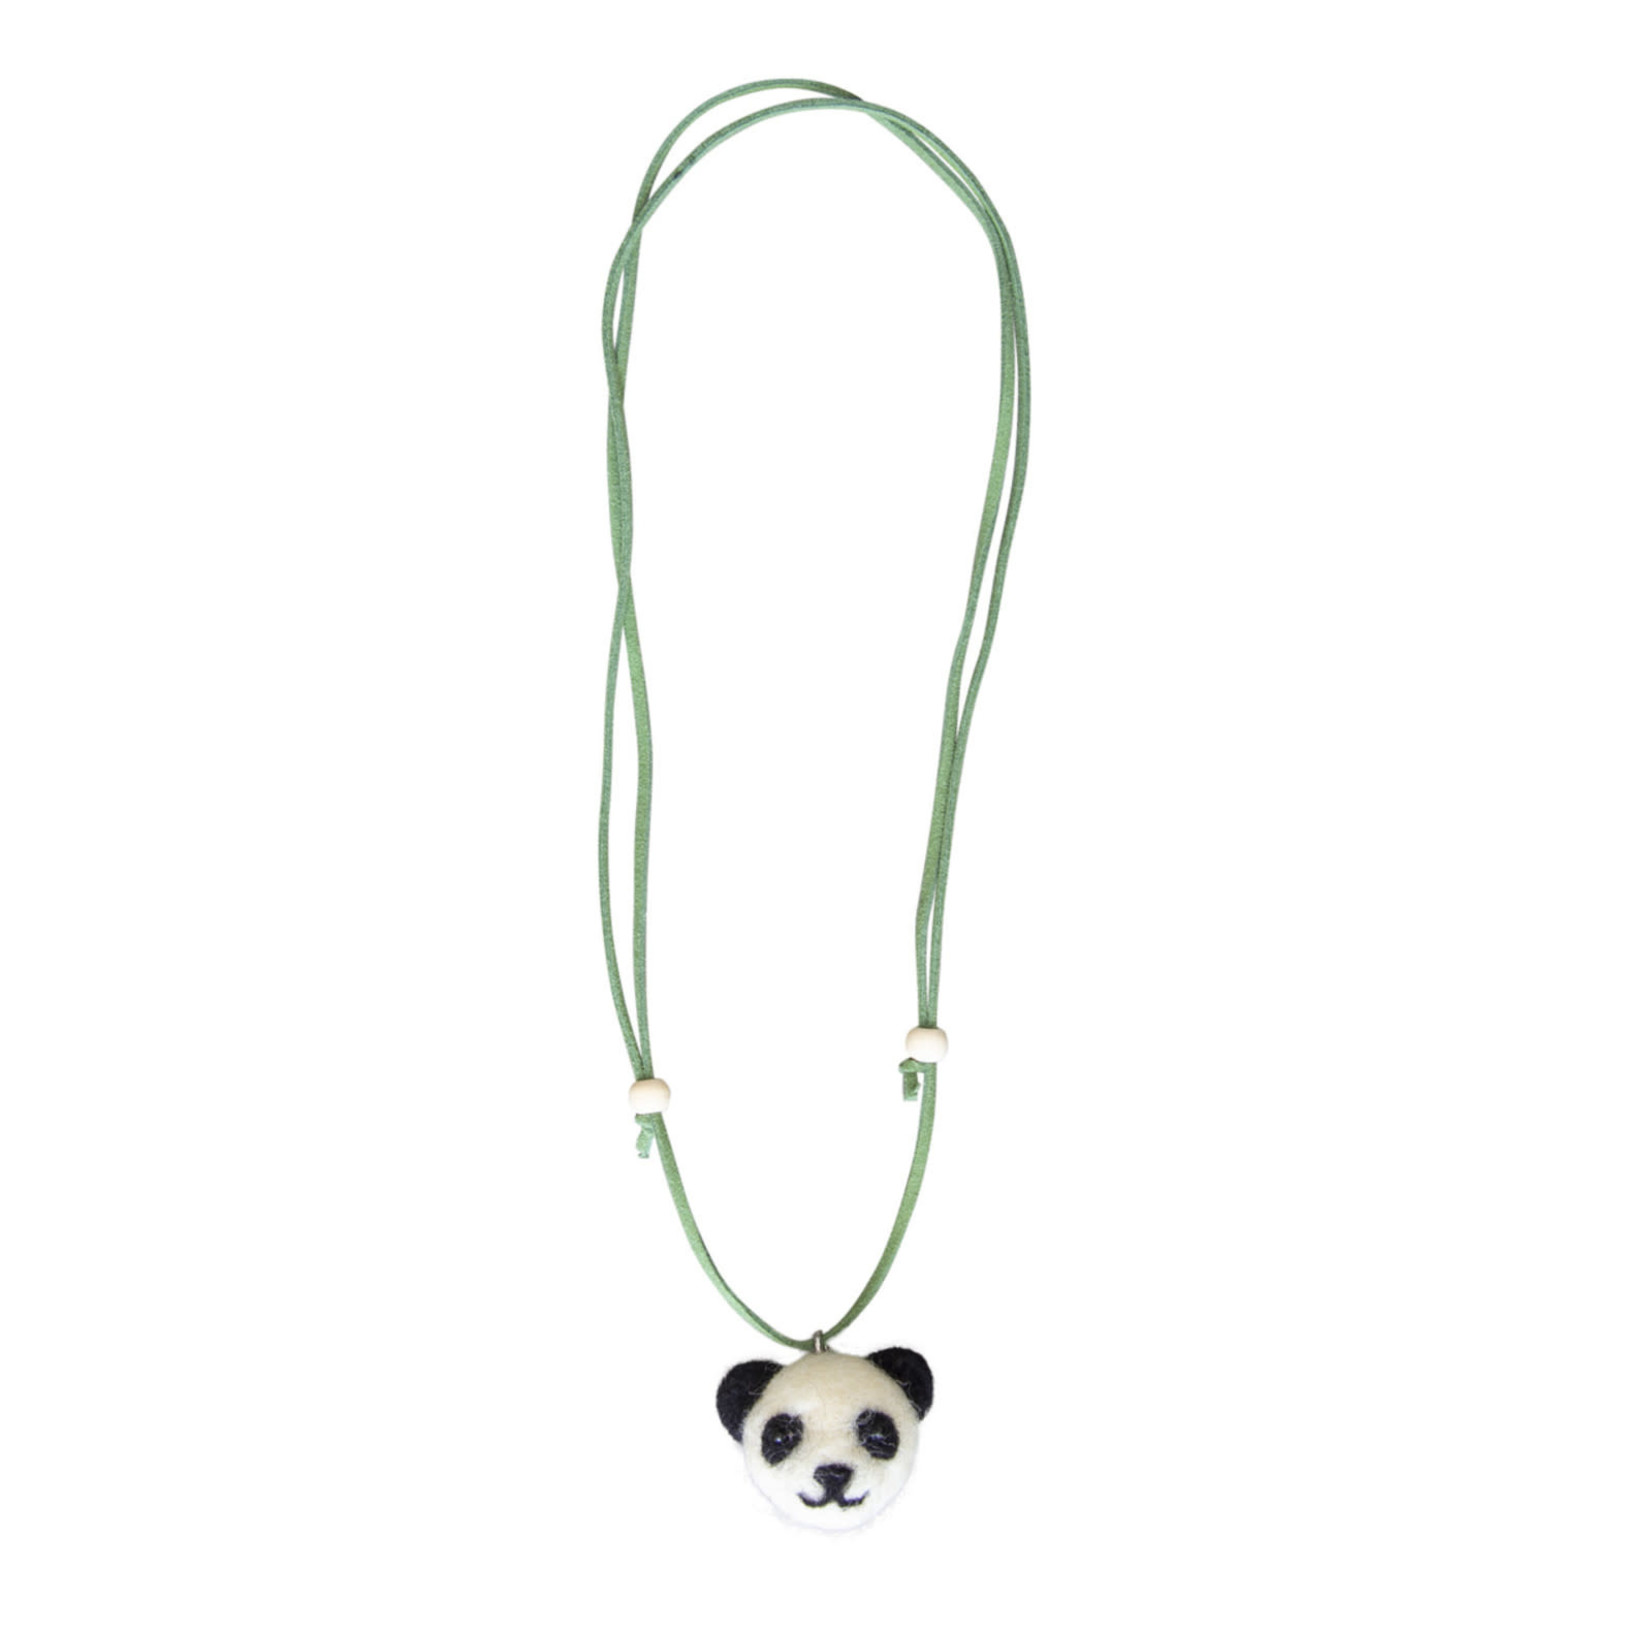 GLOBAL AFFAIRS GLOBAL AFFAIRS necklace panda